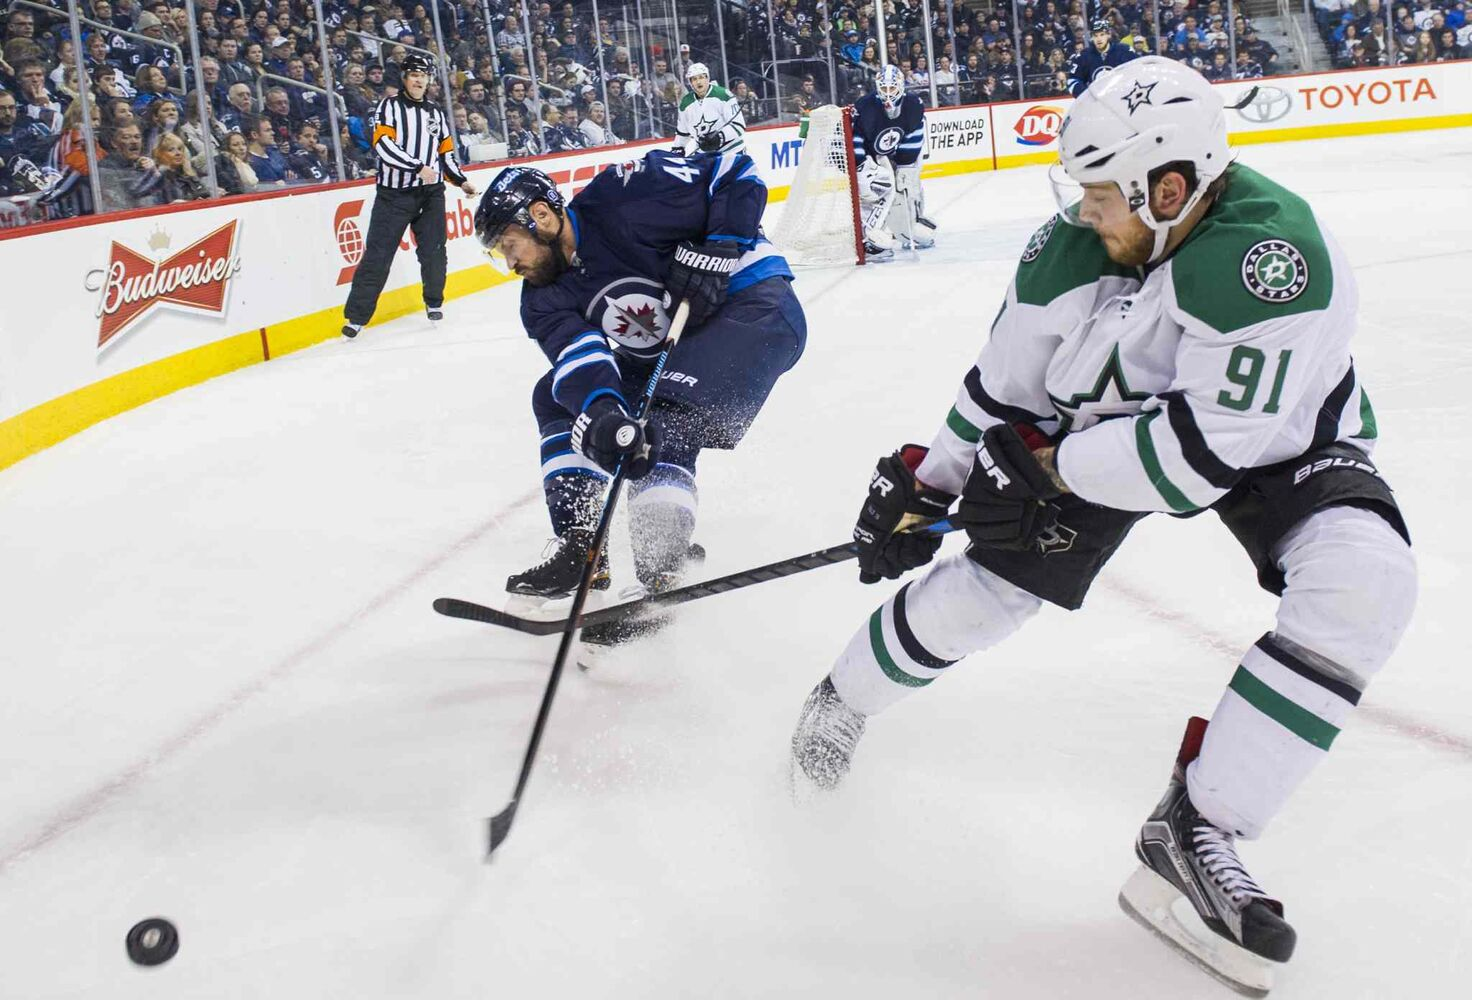 Winnipeg Jets Zach Bogosian (#44) fights for the puck against Dallas Stars Tyler Sequin during the third period of Saturday's game. The Stars won 5-2. (DAVID LIPNOWSKI / WINNIPEG FREE PRESS)